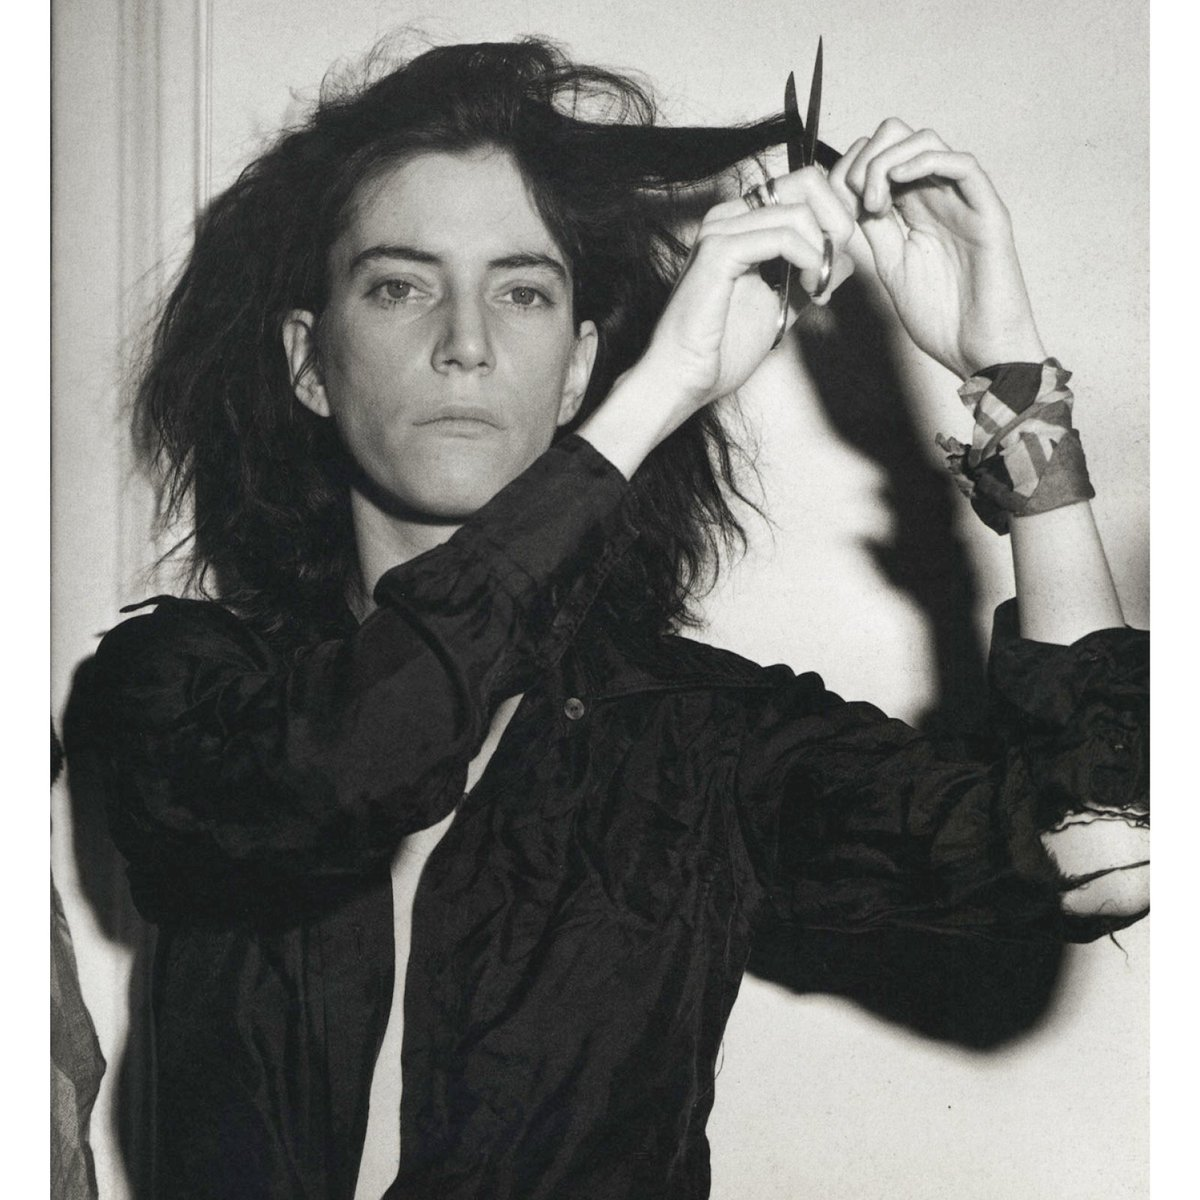 Inspiration: Patti Smith By Robert Mapplethorpe, New York, 1978. https://t.co/B4Nuo9RF4f